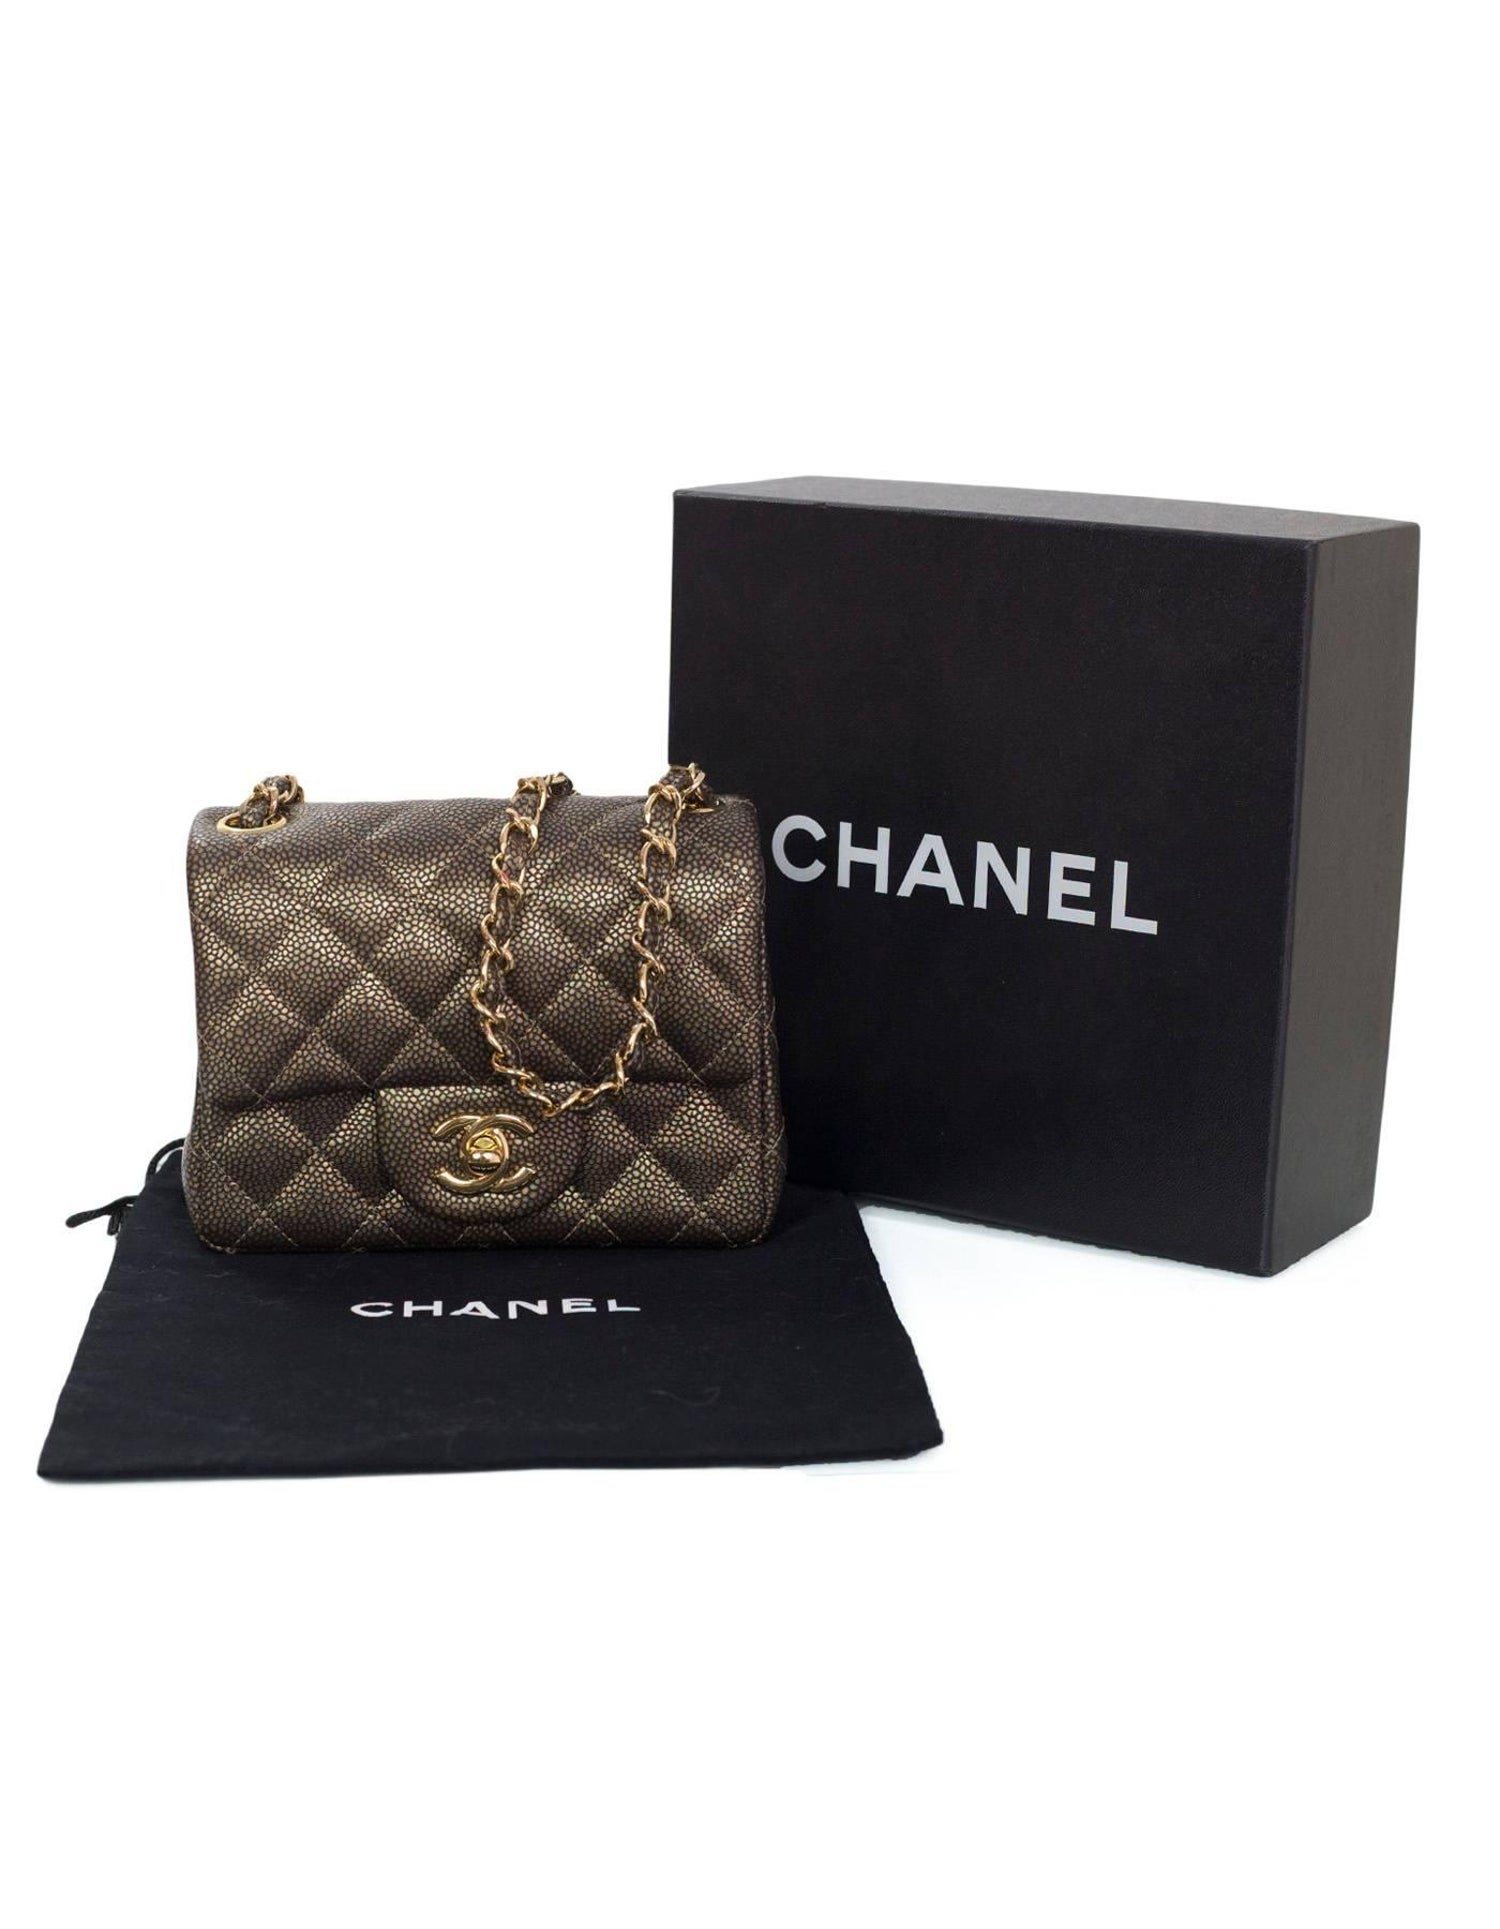 62d1460a37ad Chanel Dark Gold Caviar Square Mini Flap Bag with Box and DB For Sale at  1stdibs